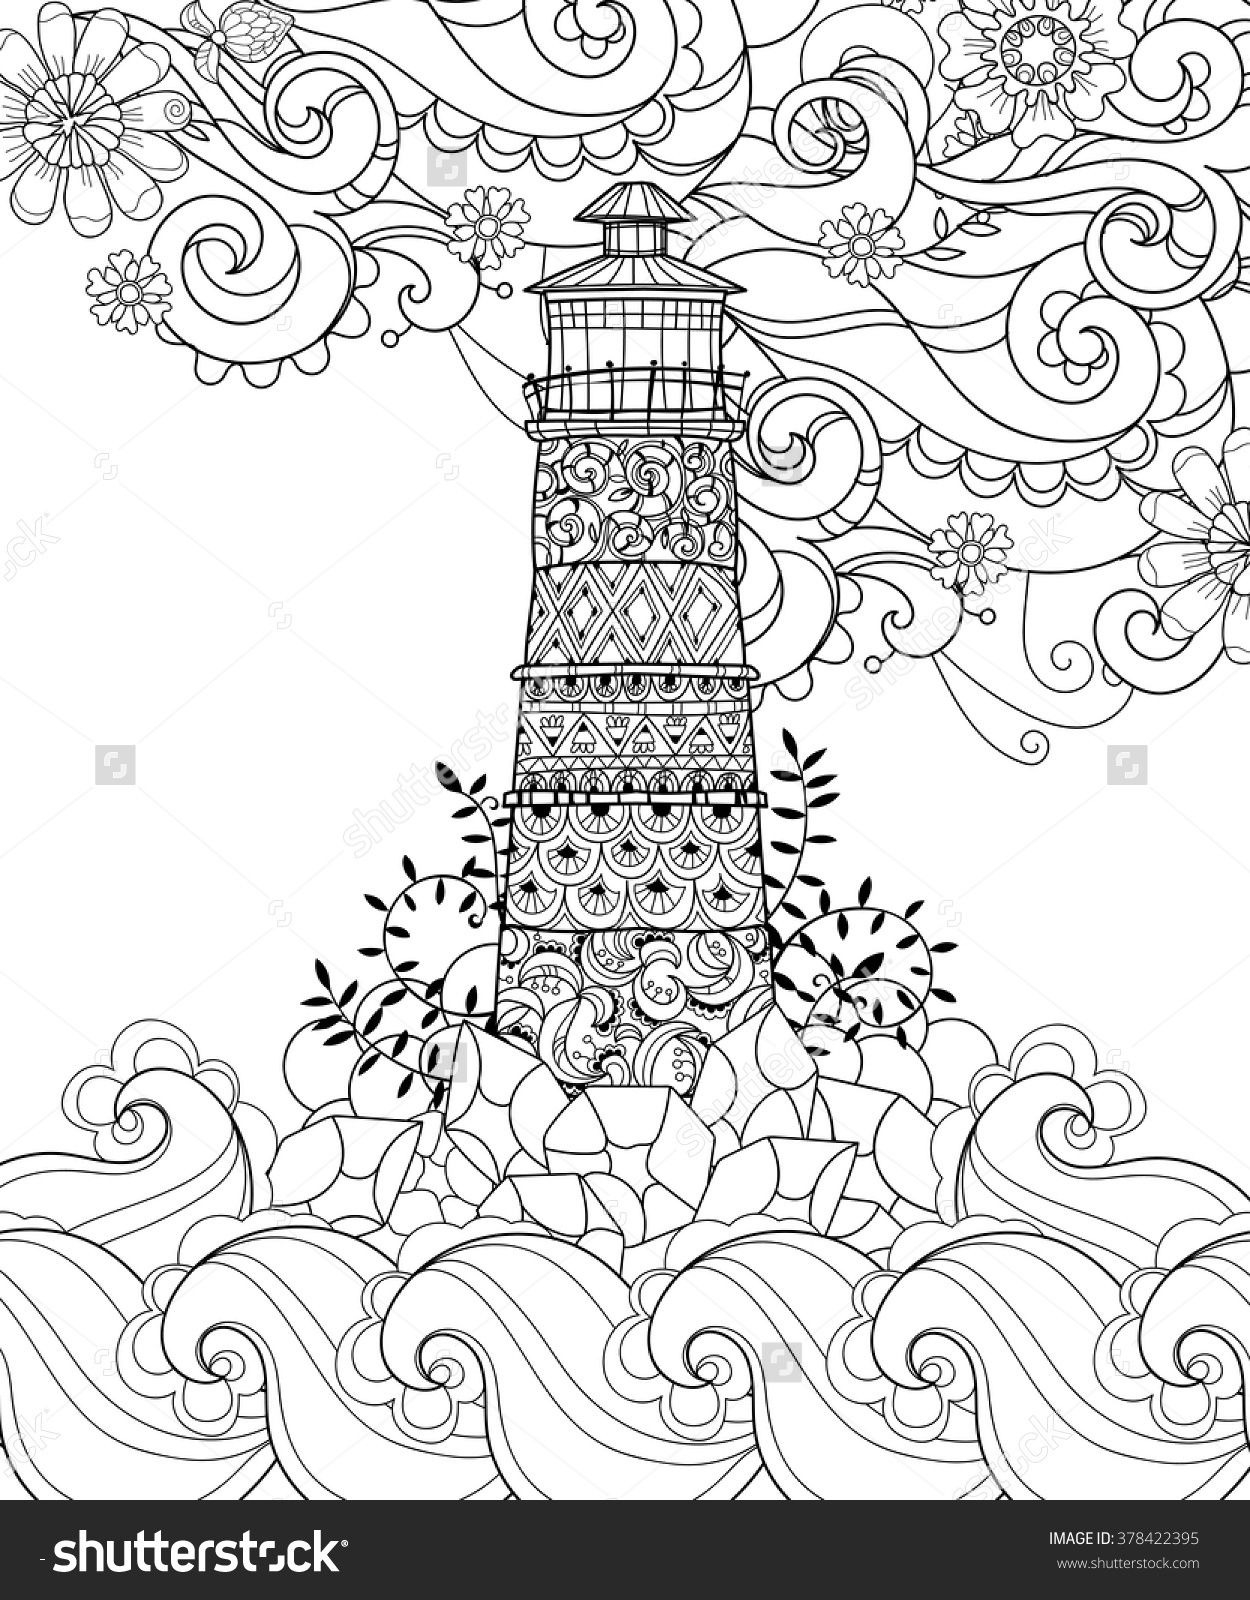 Printable Lighthouse Coloring Pages  Download 15c - To print for your project